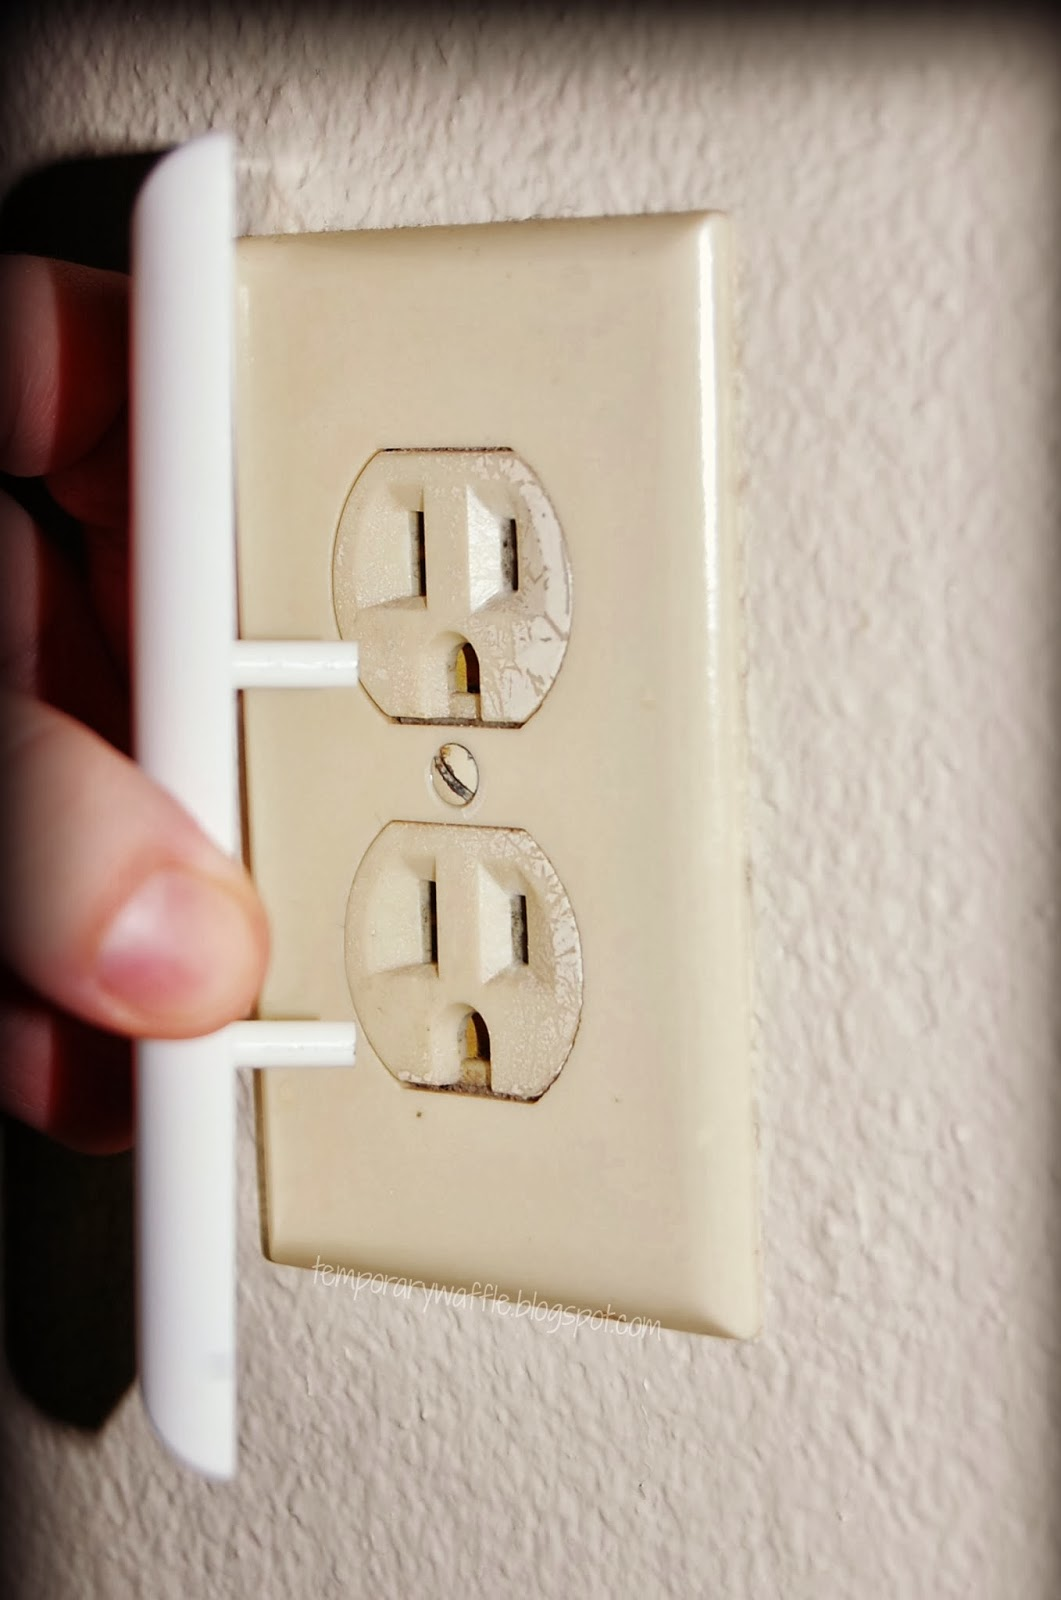 Temporary waffle child safety new electrical outlet covers Electrical outlet covers